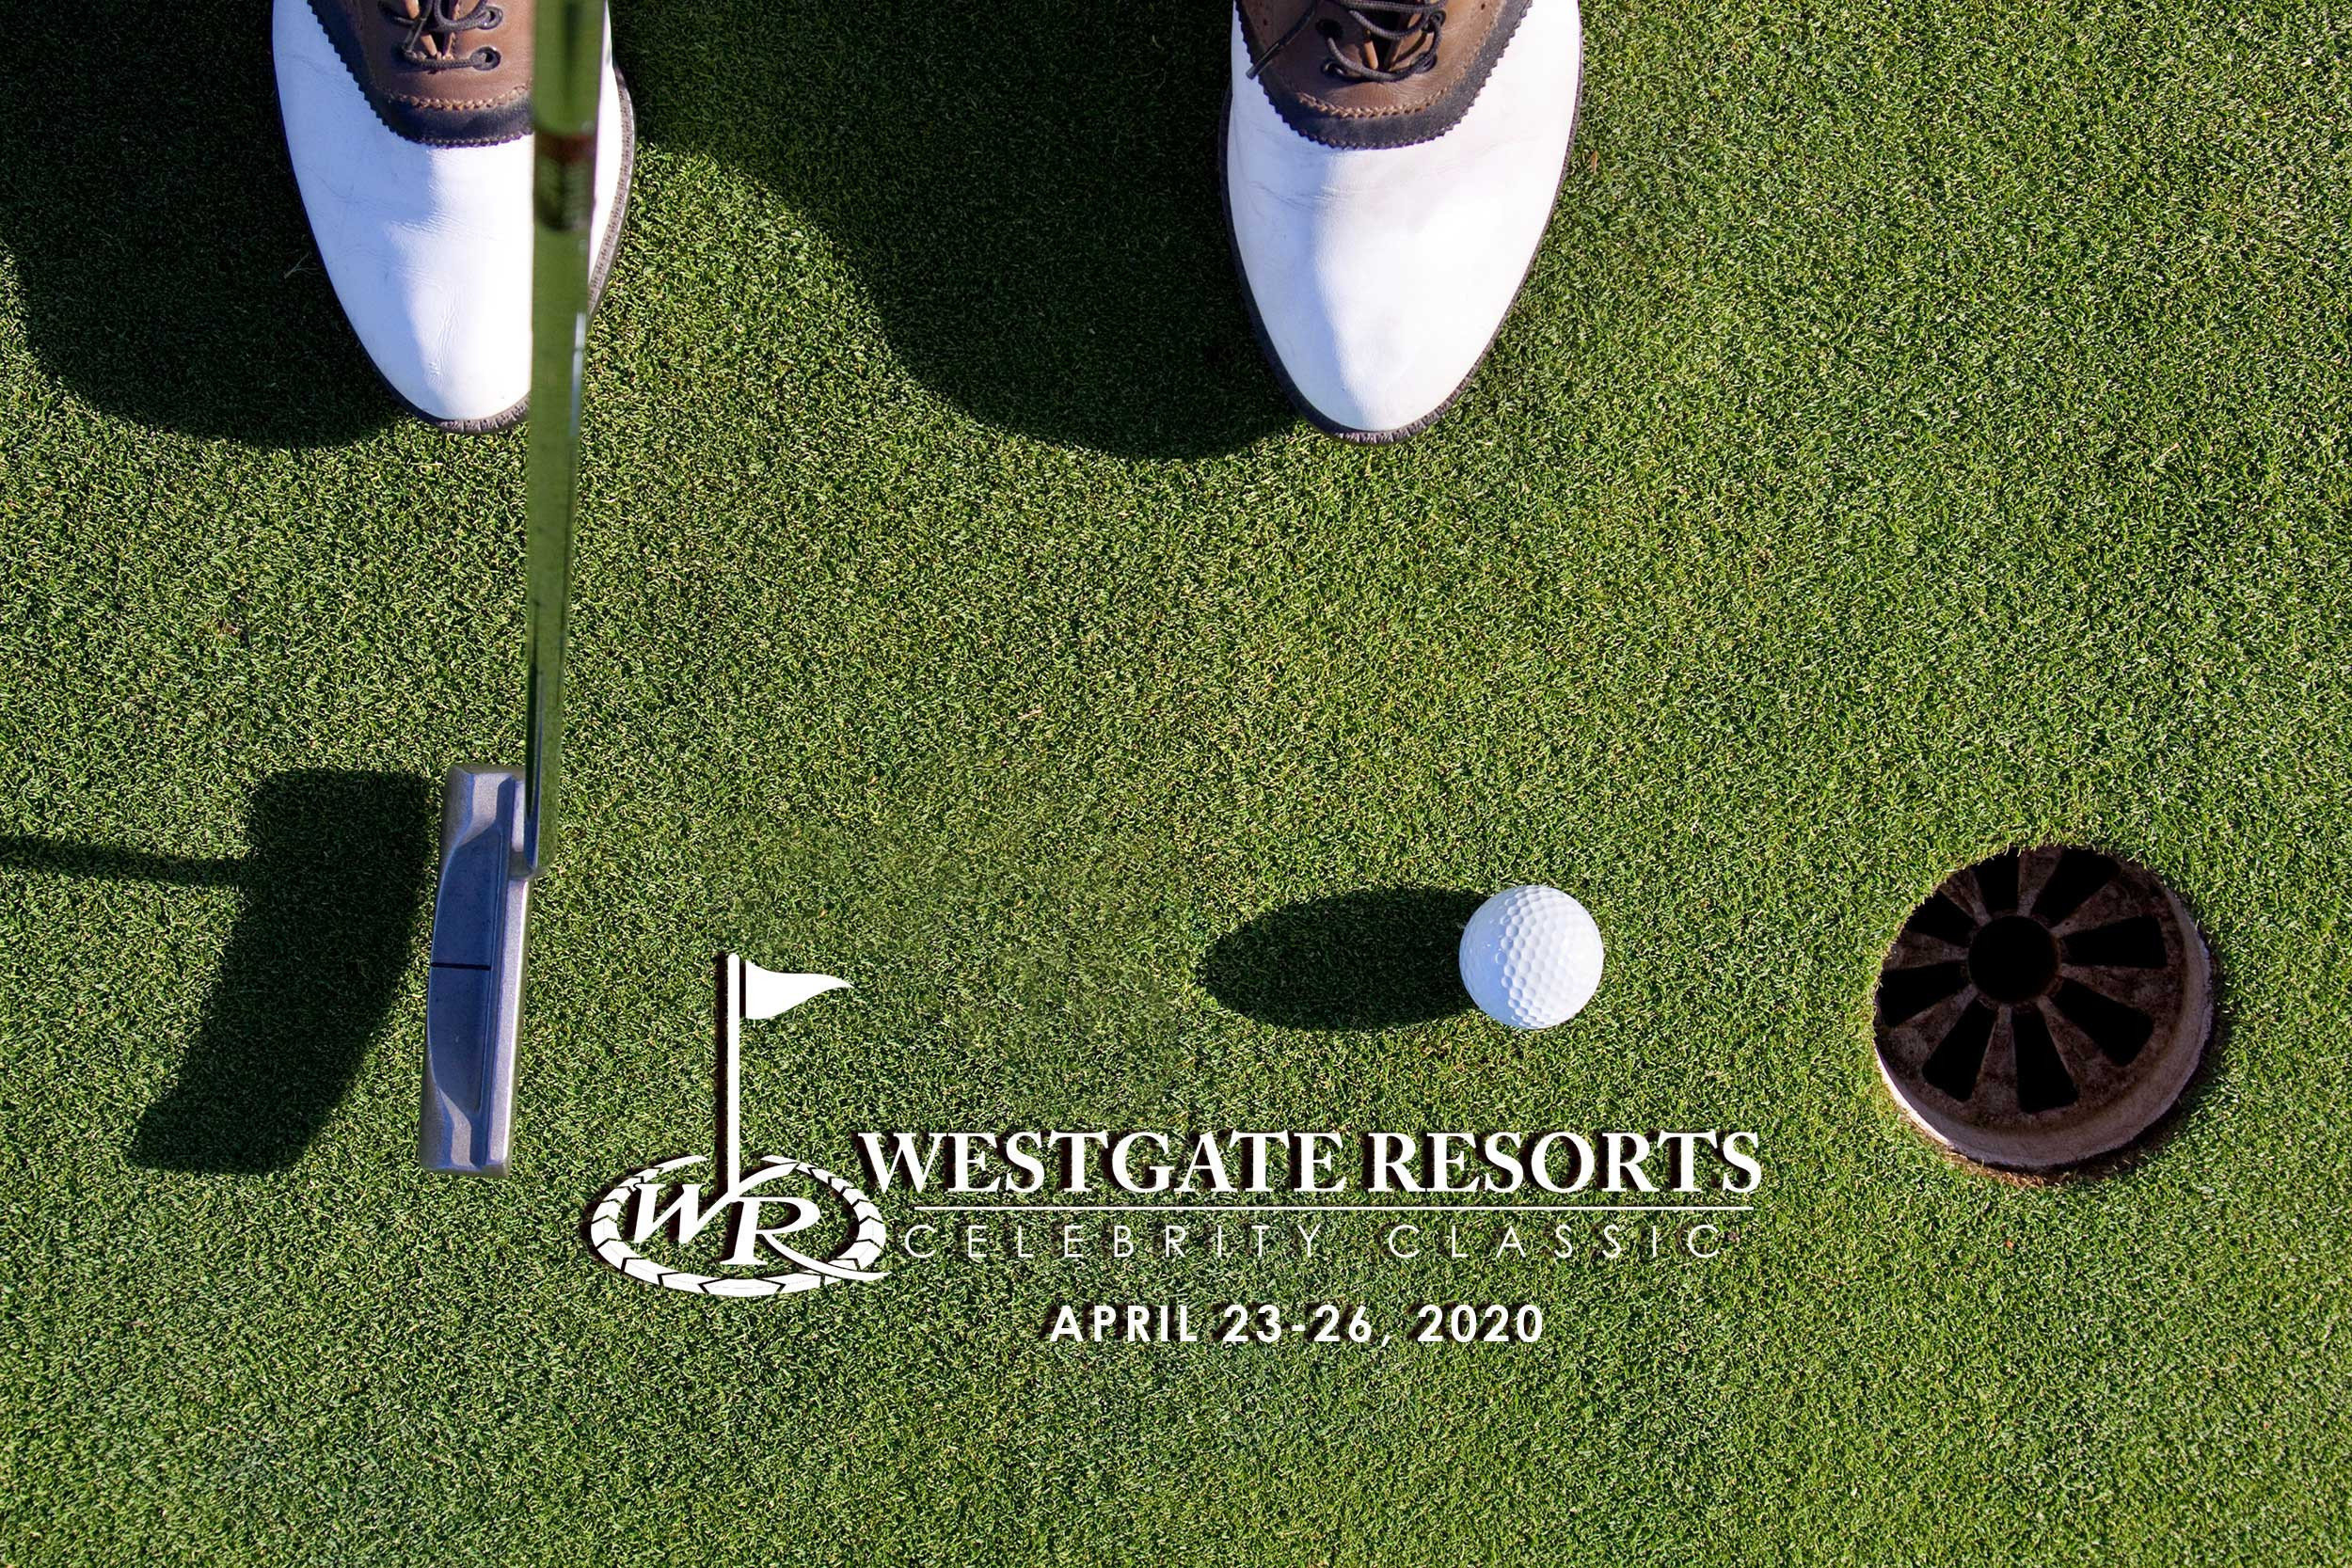 Golf putting Hole in One | Westgate Resorts Celebrity Golf Classic Tournament